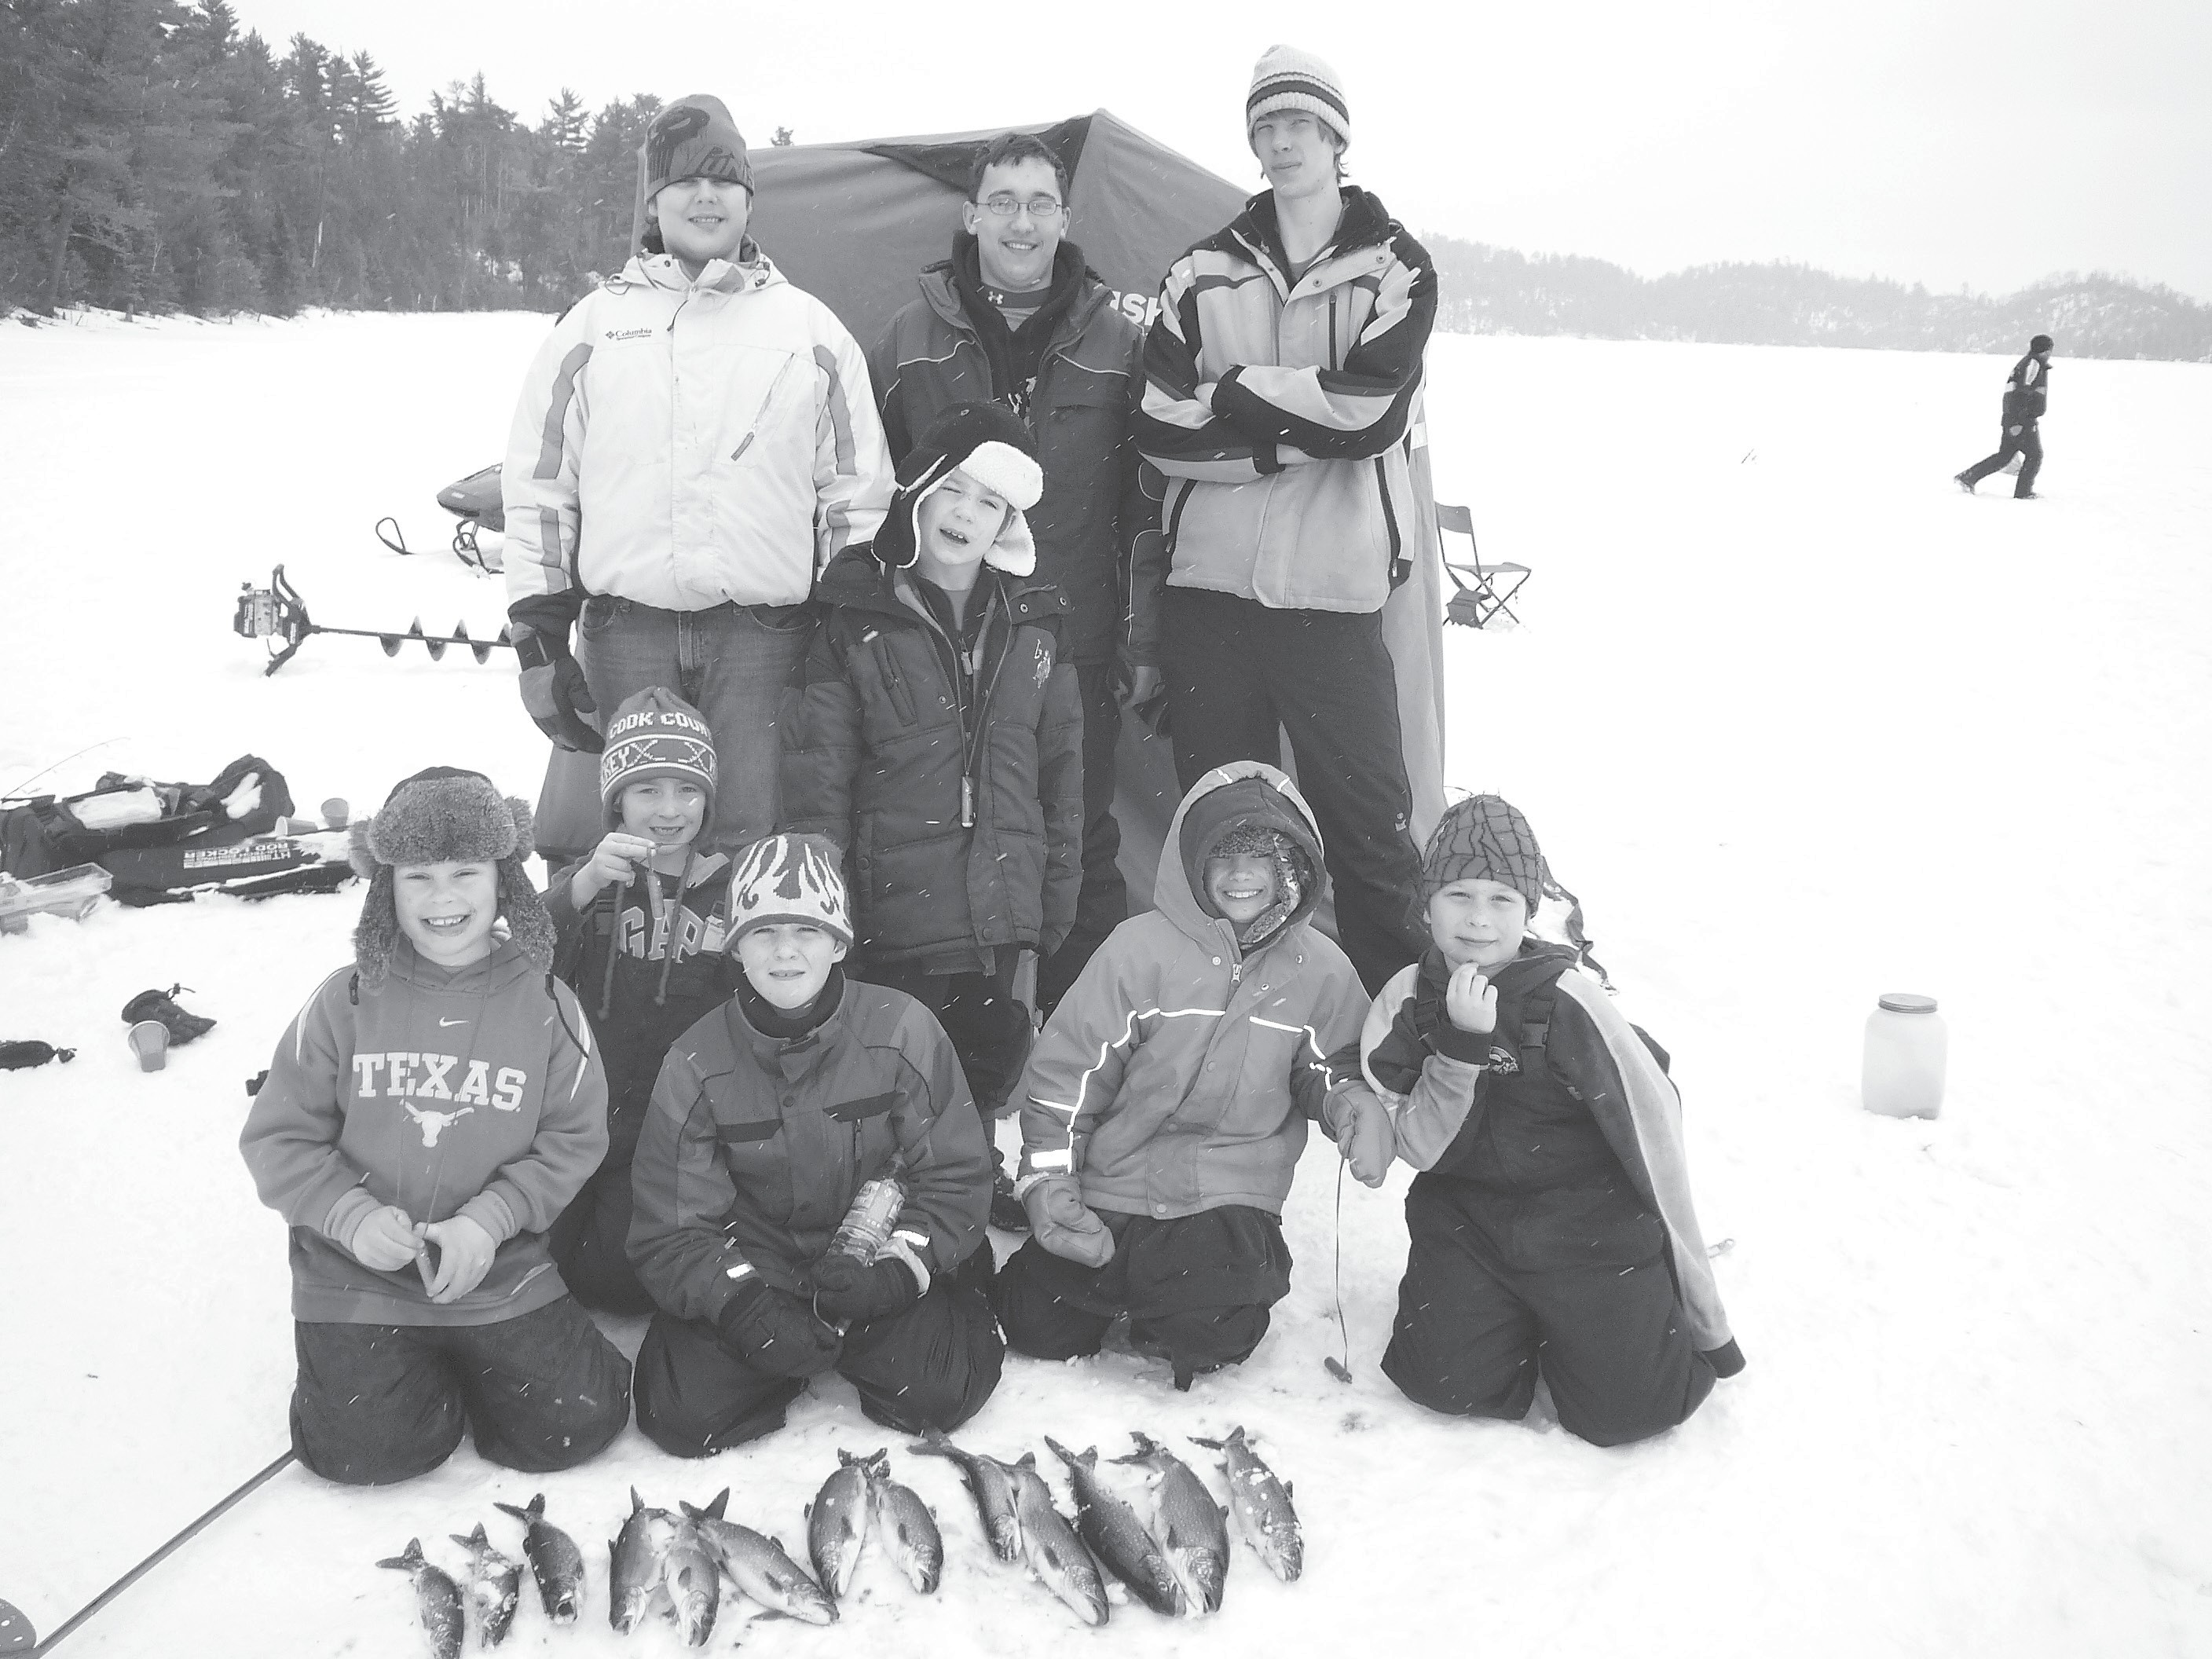 Ice fishing Scouts enjoy day on Moss Lake | Cook County News